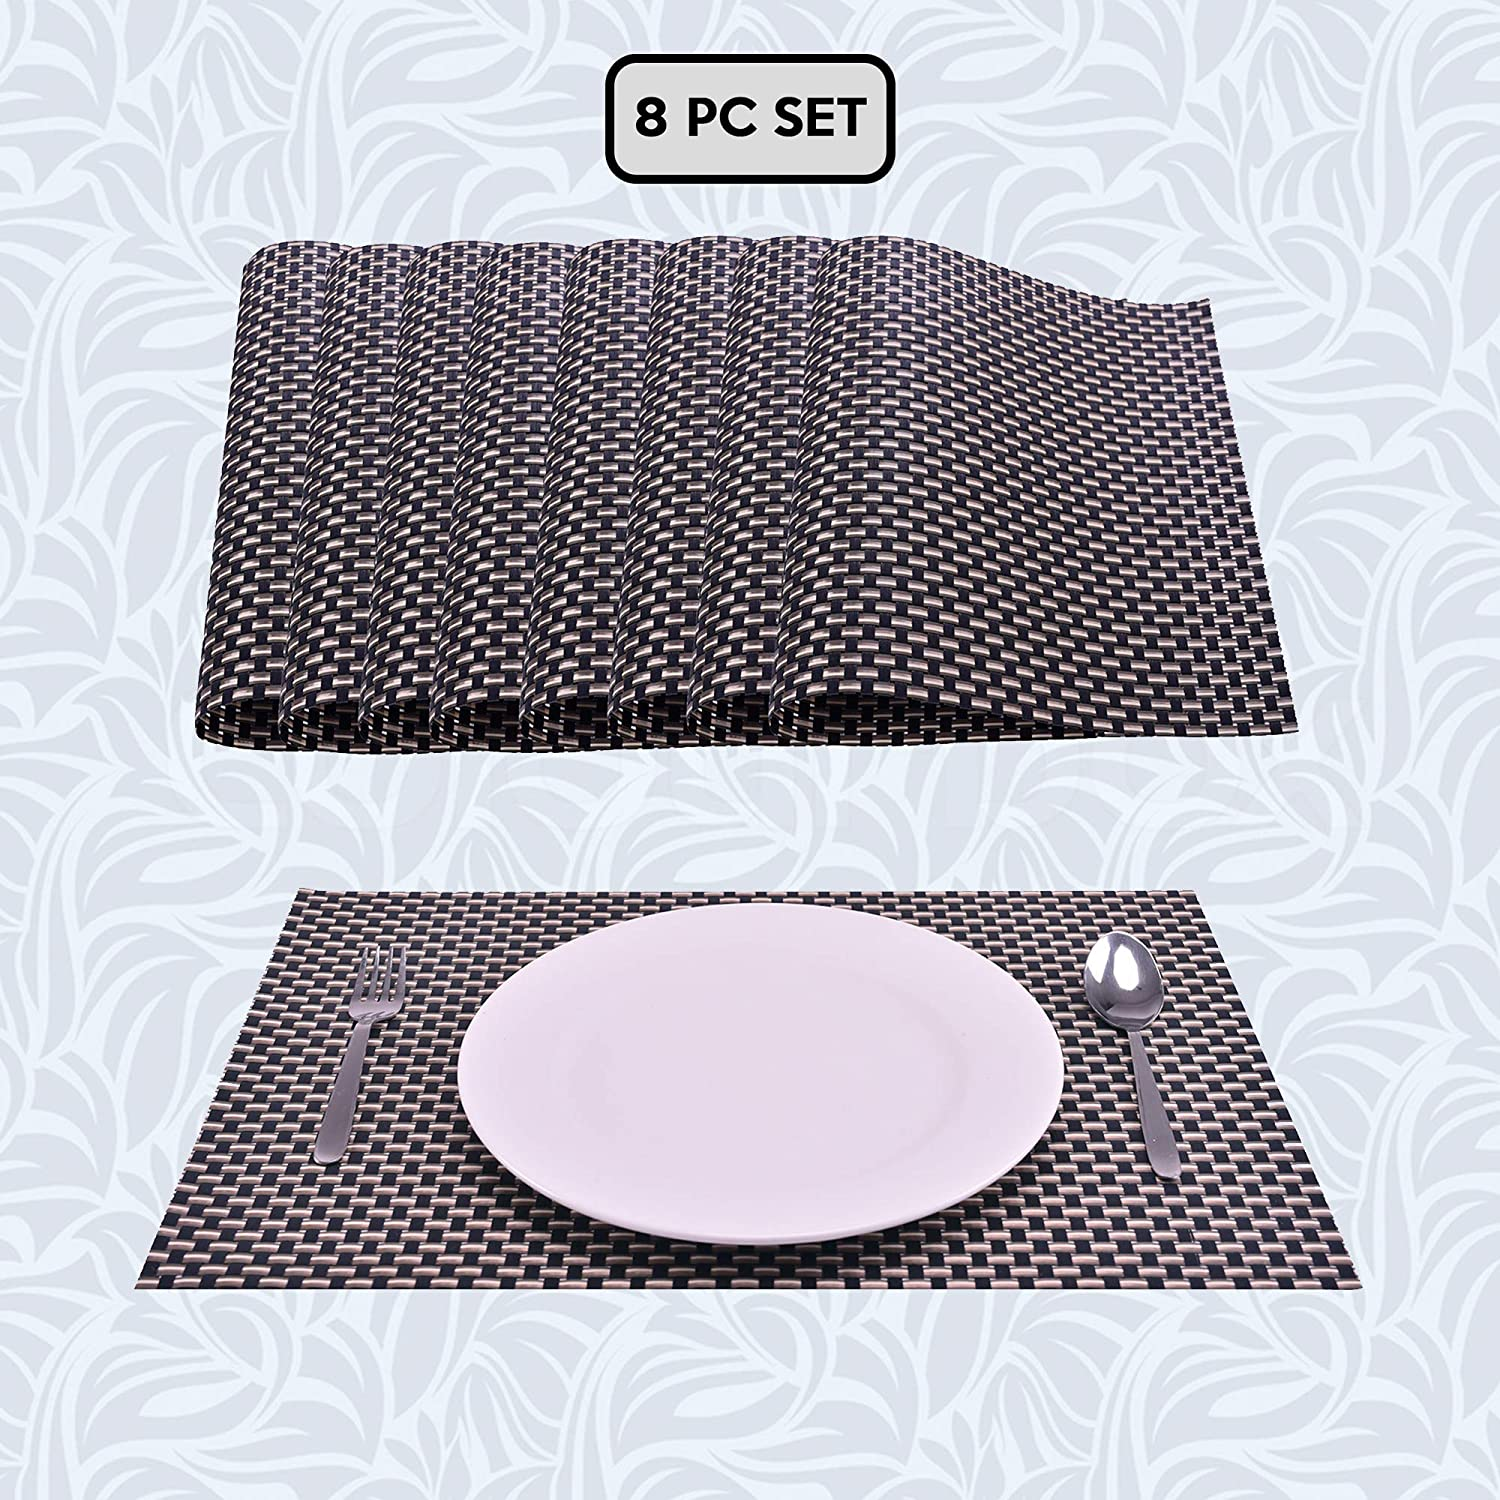 """Decozen PVC Placemats Set of 8 for Dining Table Coffee Table Kitchen Mats Heat Resistant Anti Skid Washable Easy to Clean Woven Vinyl Placemats in Reusable Pouch 18""""x12""""- Black/Gold"""